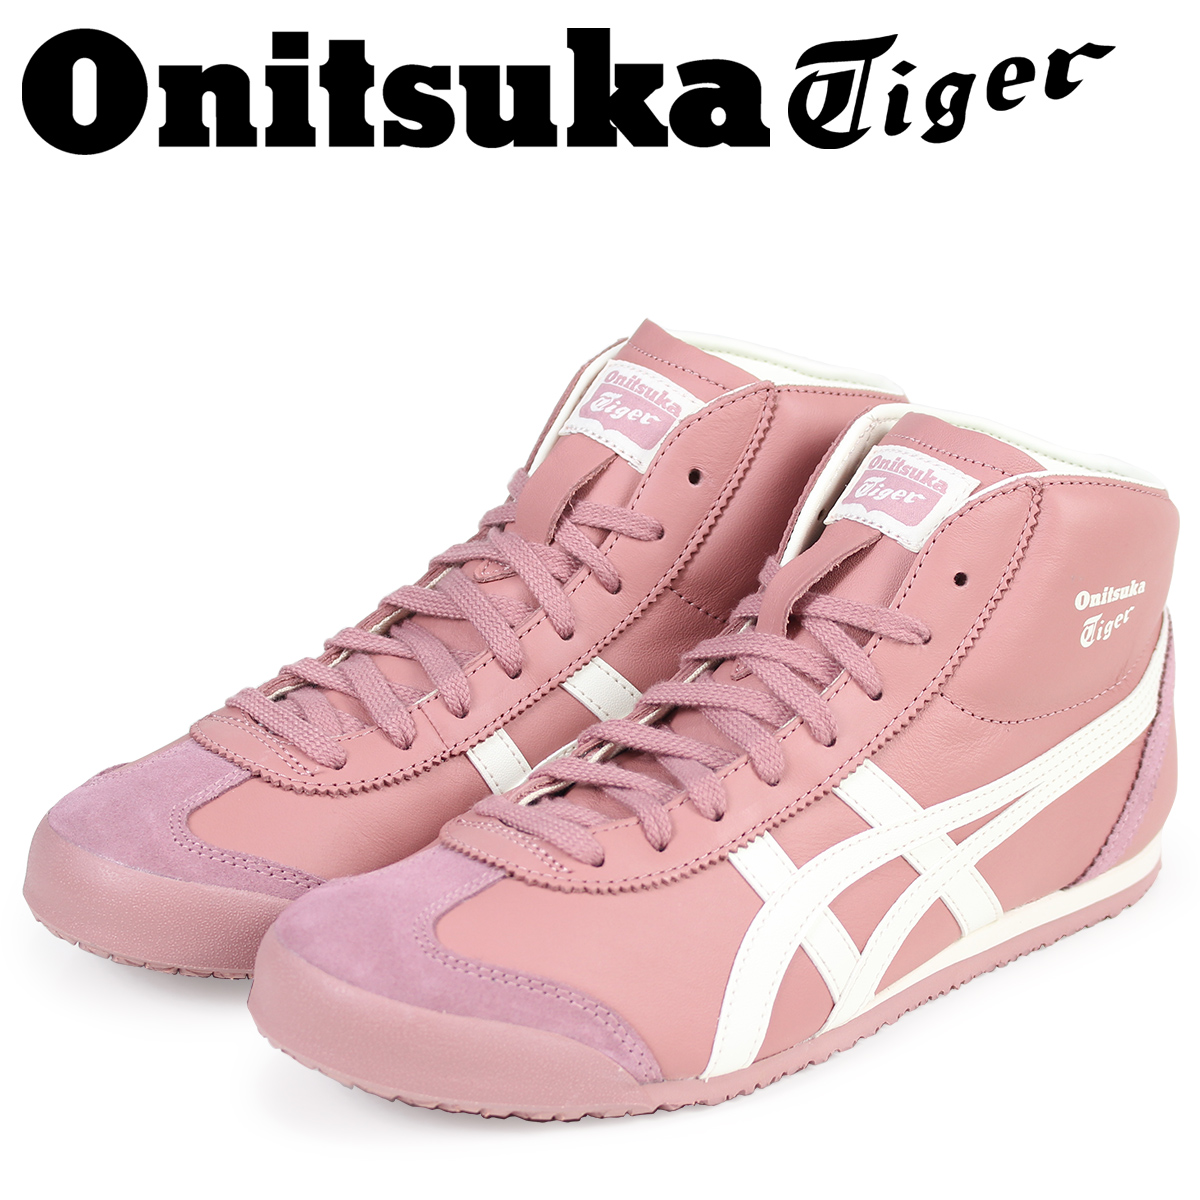 onitsuka tiger mexico mid runner review xxl